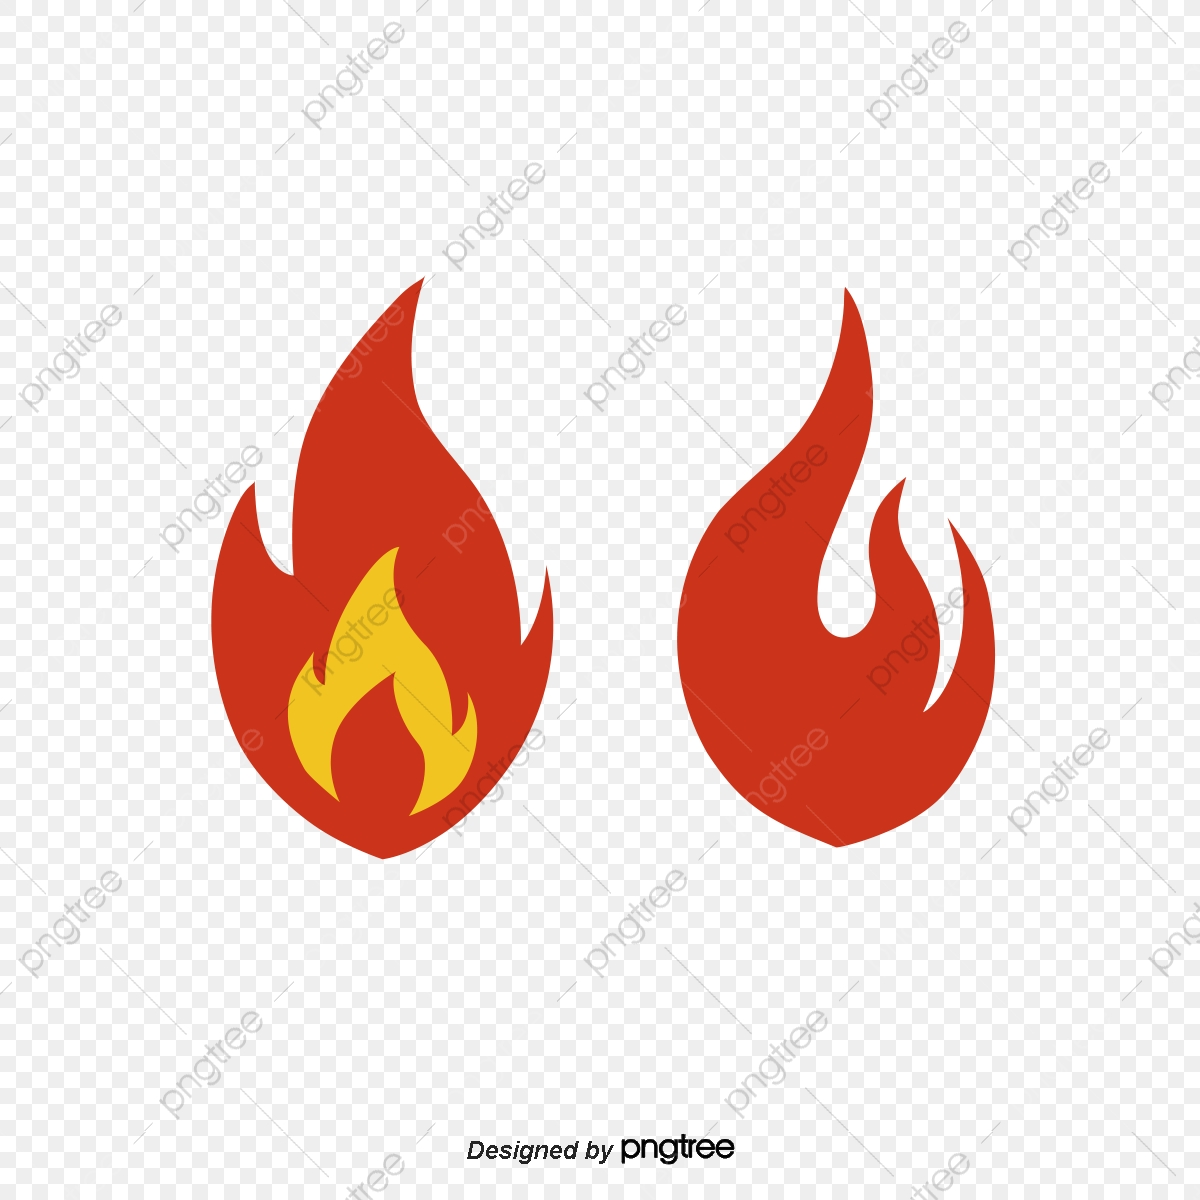 Flame Palm Flame Palm Hand Png And Vector With Transparent Background For Free Download 32,082 transparent png illustrations and cipart matching fire. https pngtree com freepng flame palm 1168400 html